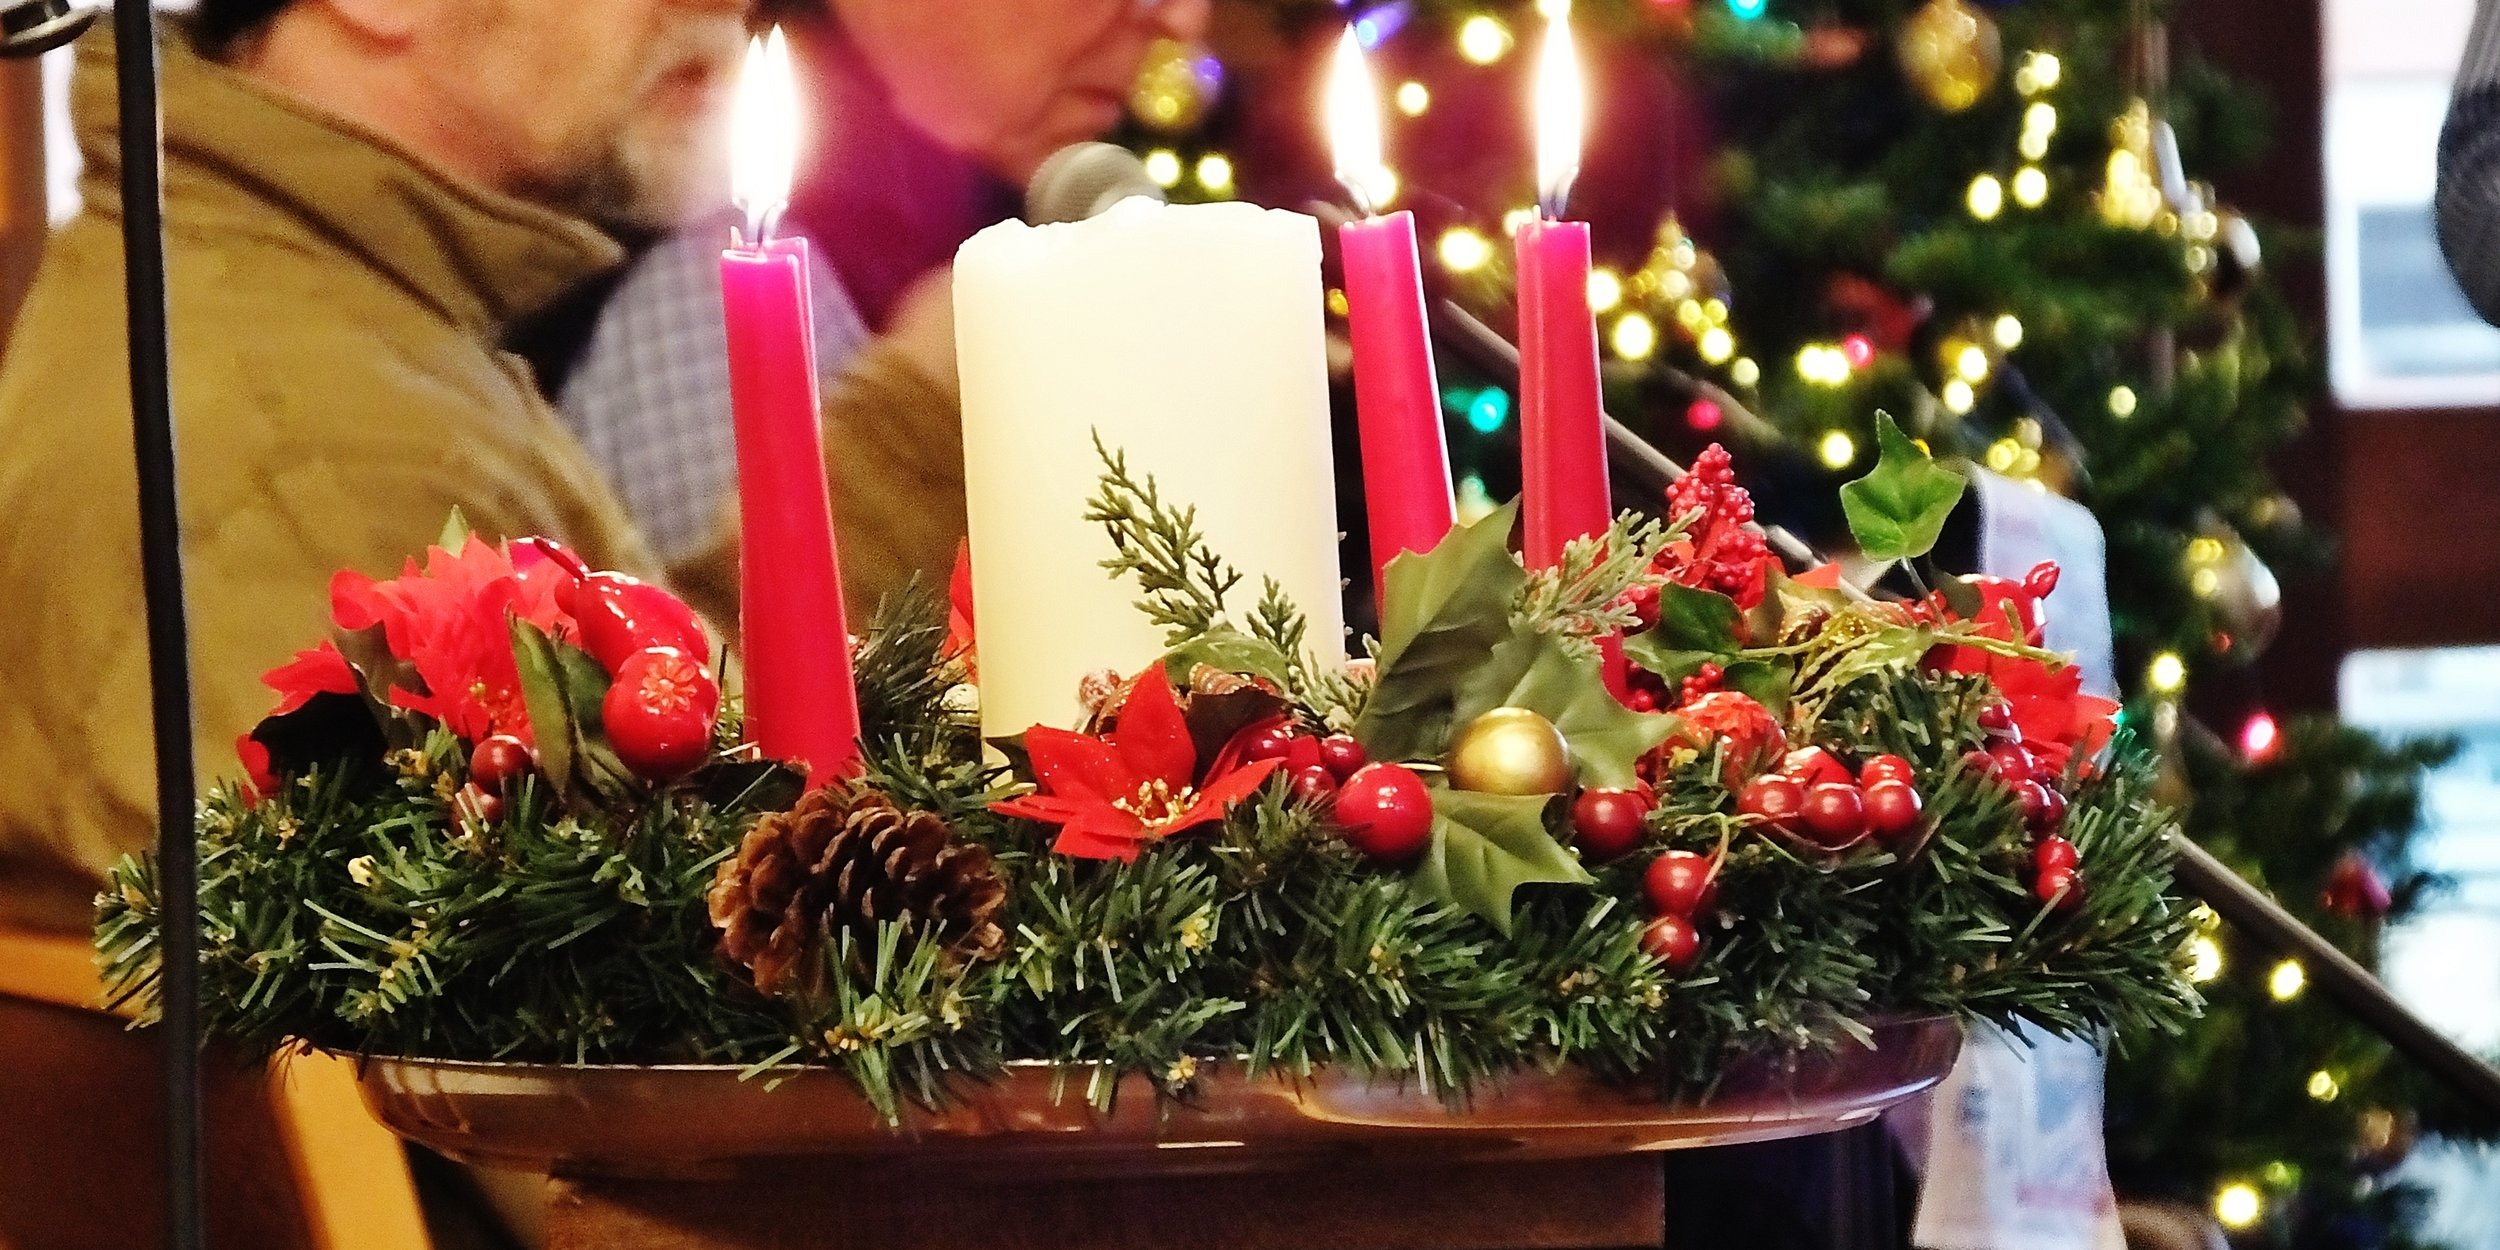 The Christmas Candles